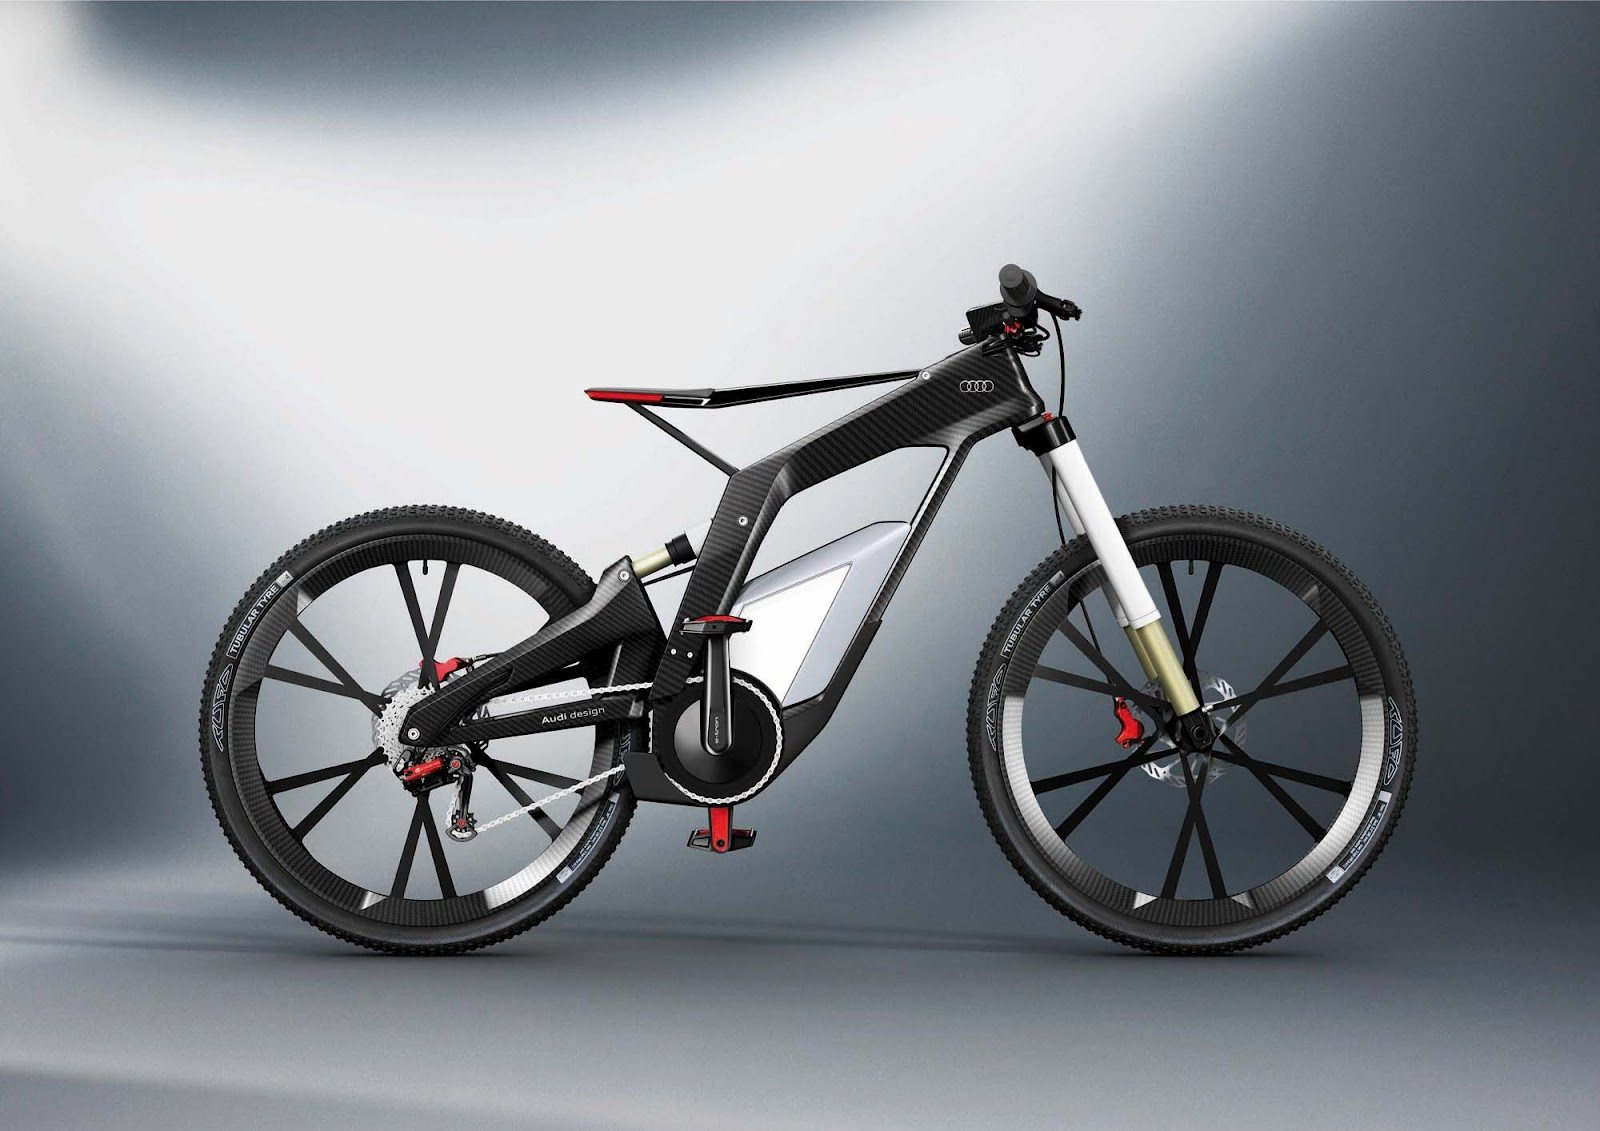 pro rc cars with Audi E Bike Electric Bike Hd Wallpapers on Audi E Bike Electric Bike Hd Wallpapers also Transformers Bumblebee Coloring Pages For Kids further Ford Crown Victoria Black additionally 53826 C Hud Navi likewise Losi Baja Rey Desert Truck.